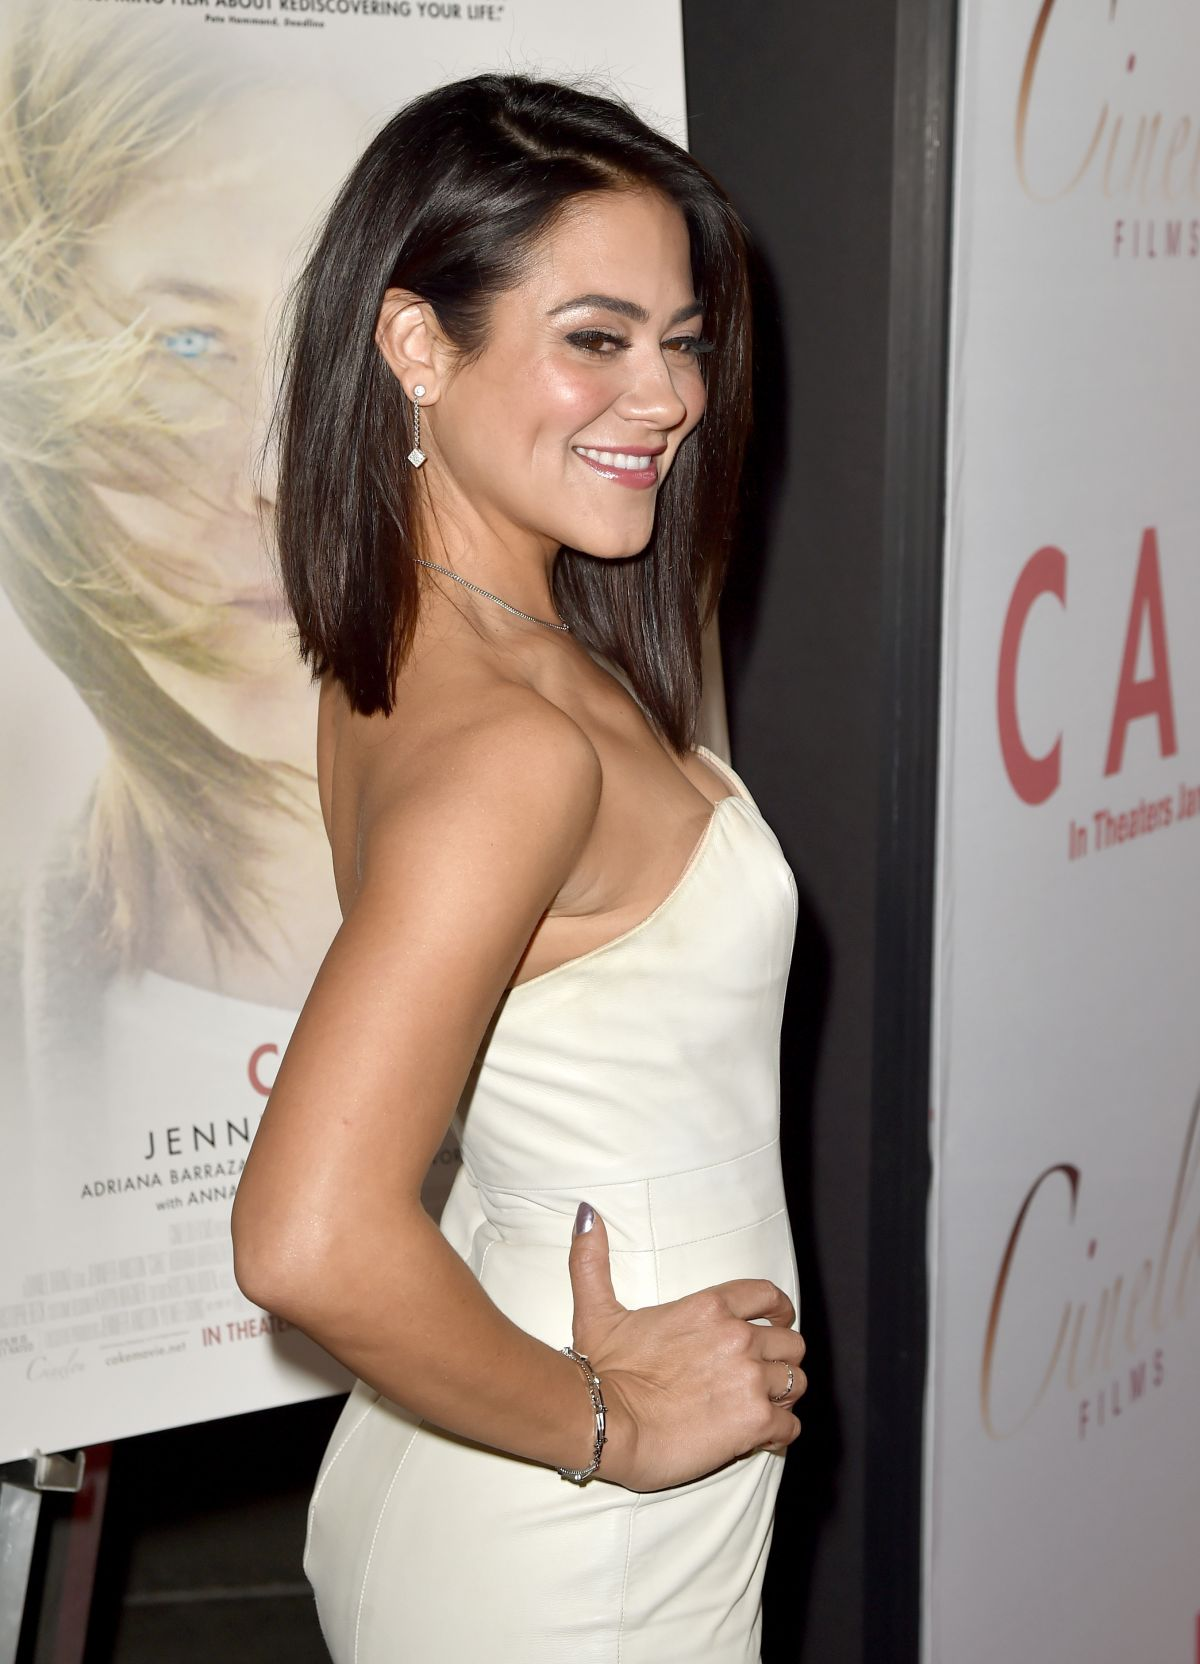 CAMILLE GUATY at Cake Premiere in Hollywood